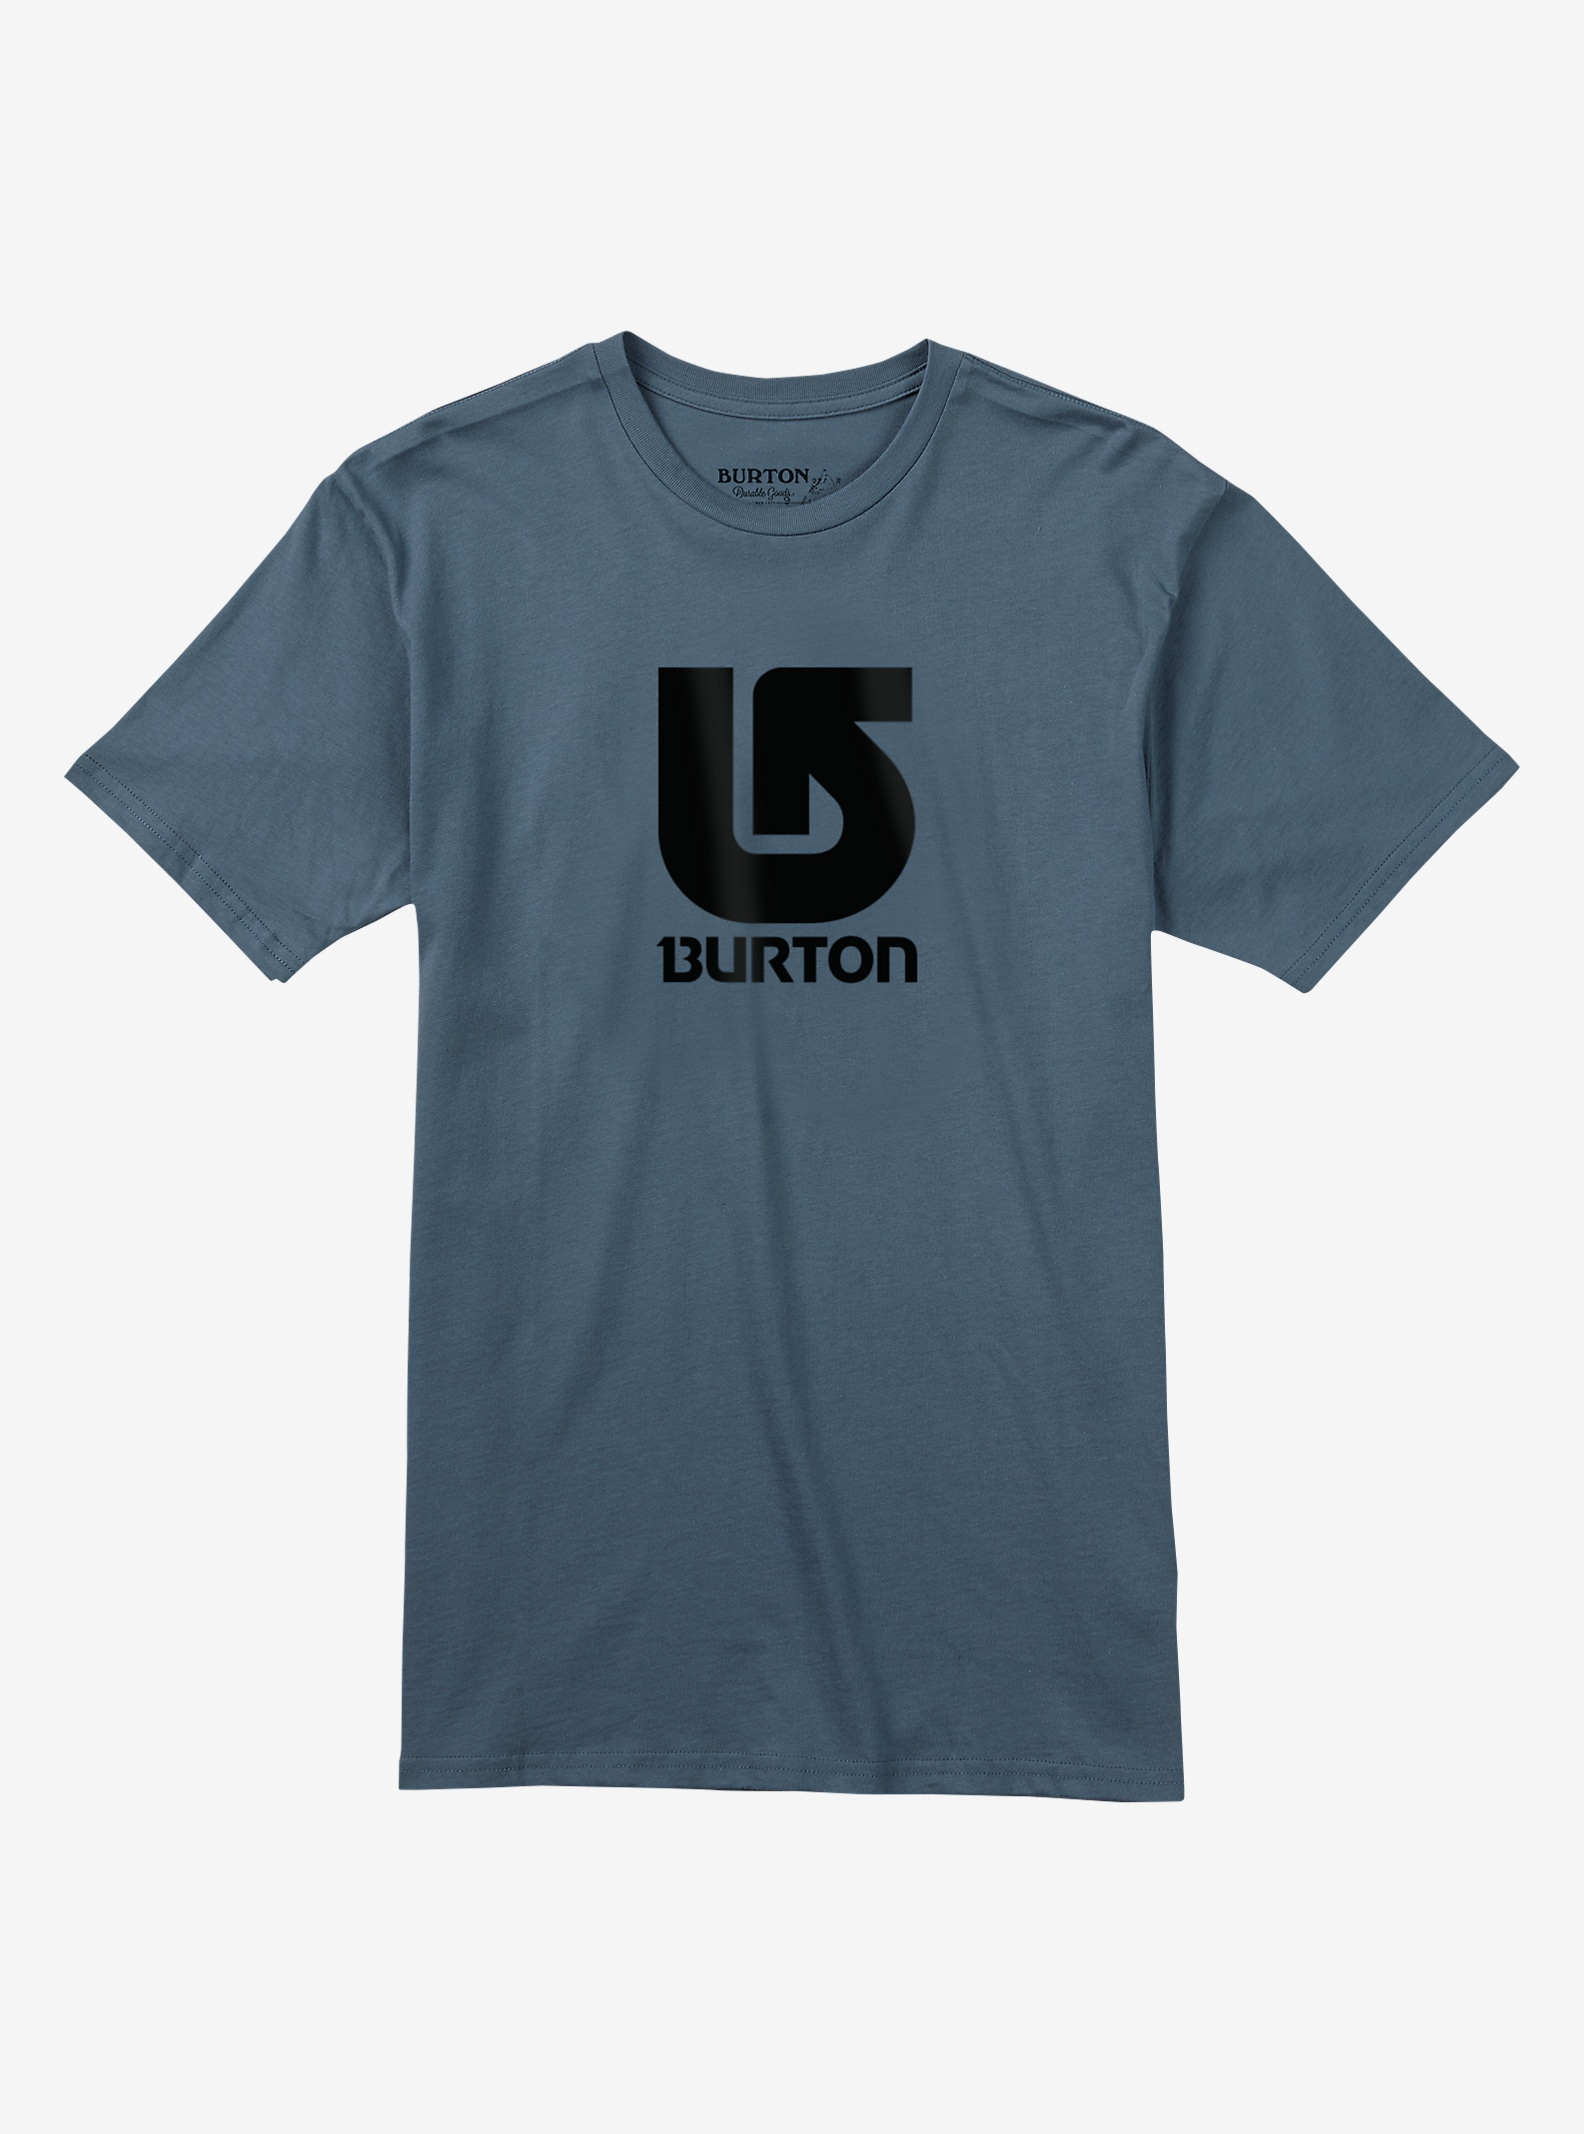 Burton Logo Vertical Slim Fit Short Sleeve T Shirt shown in Blue Mirage